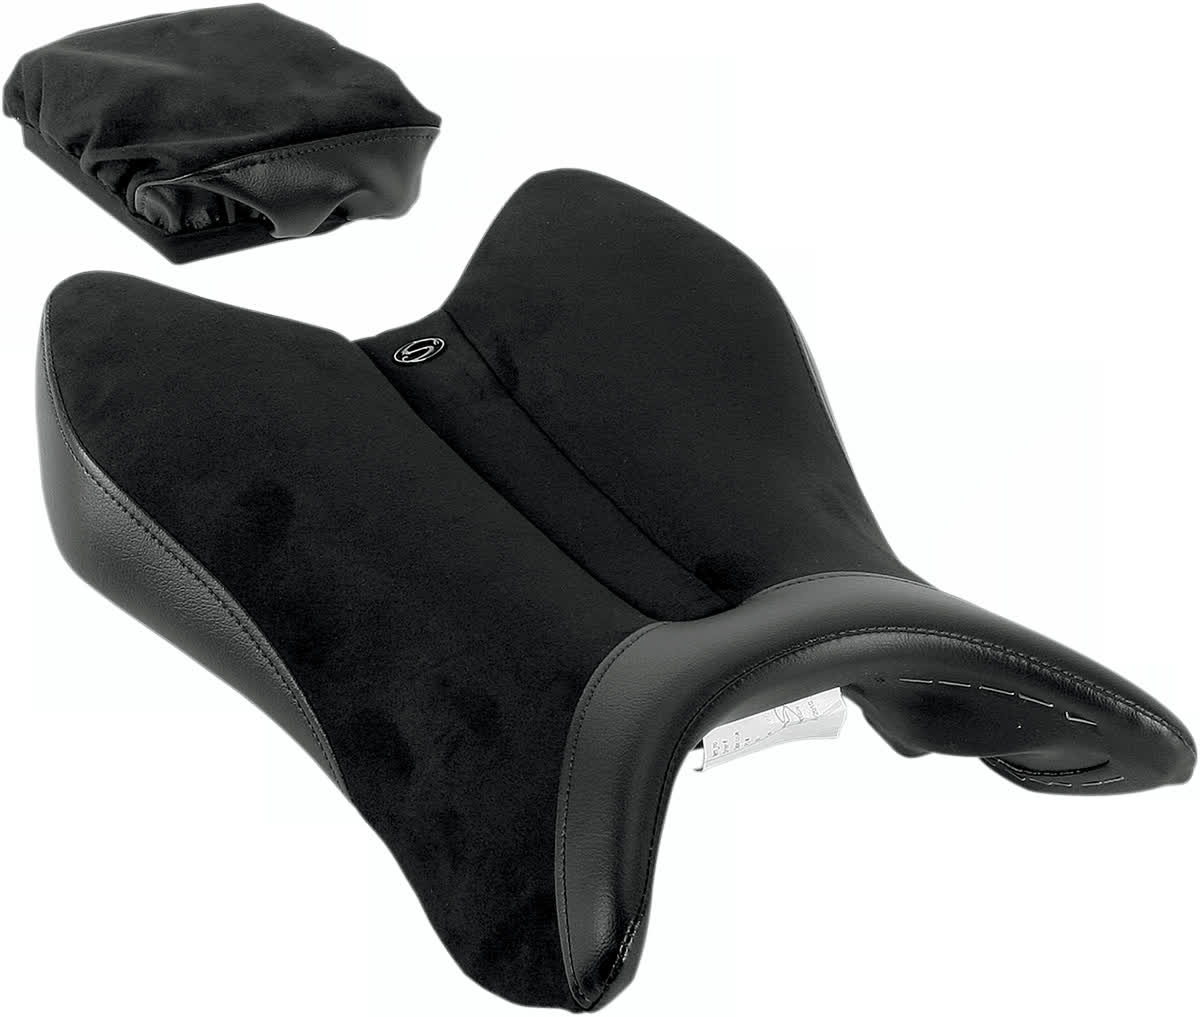 Saddlemen 0810-0790 Gel-Channel Sport One-Piece Solo Seat with Rear Cover